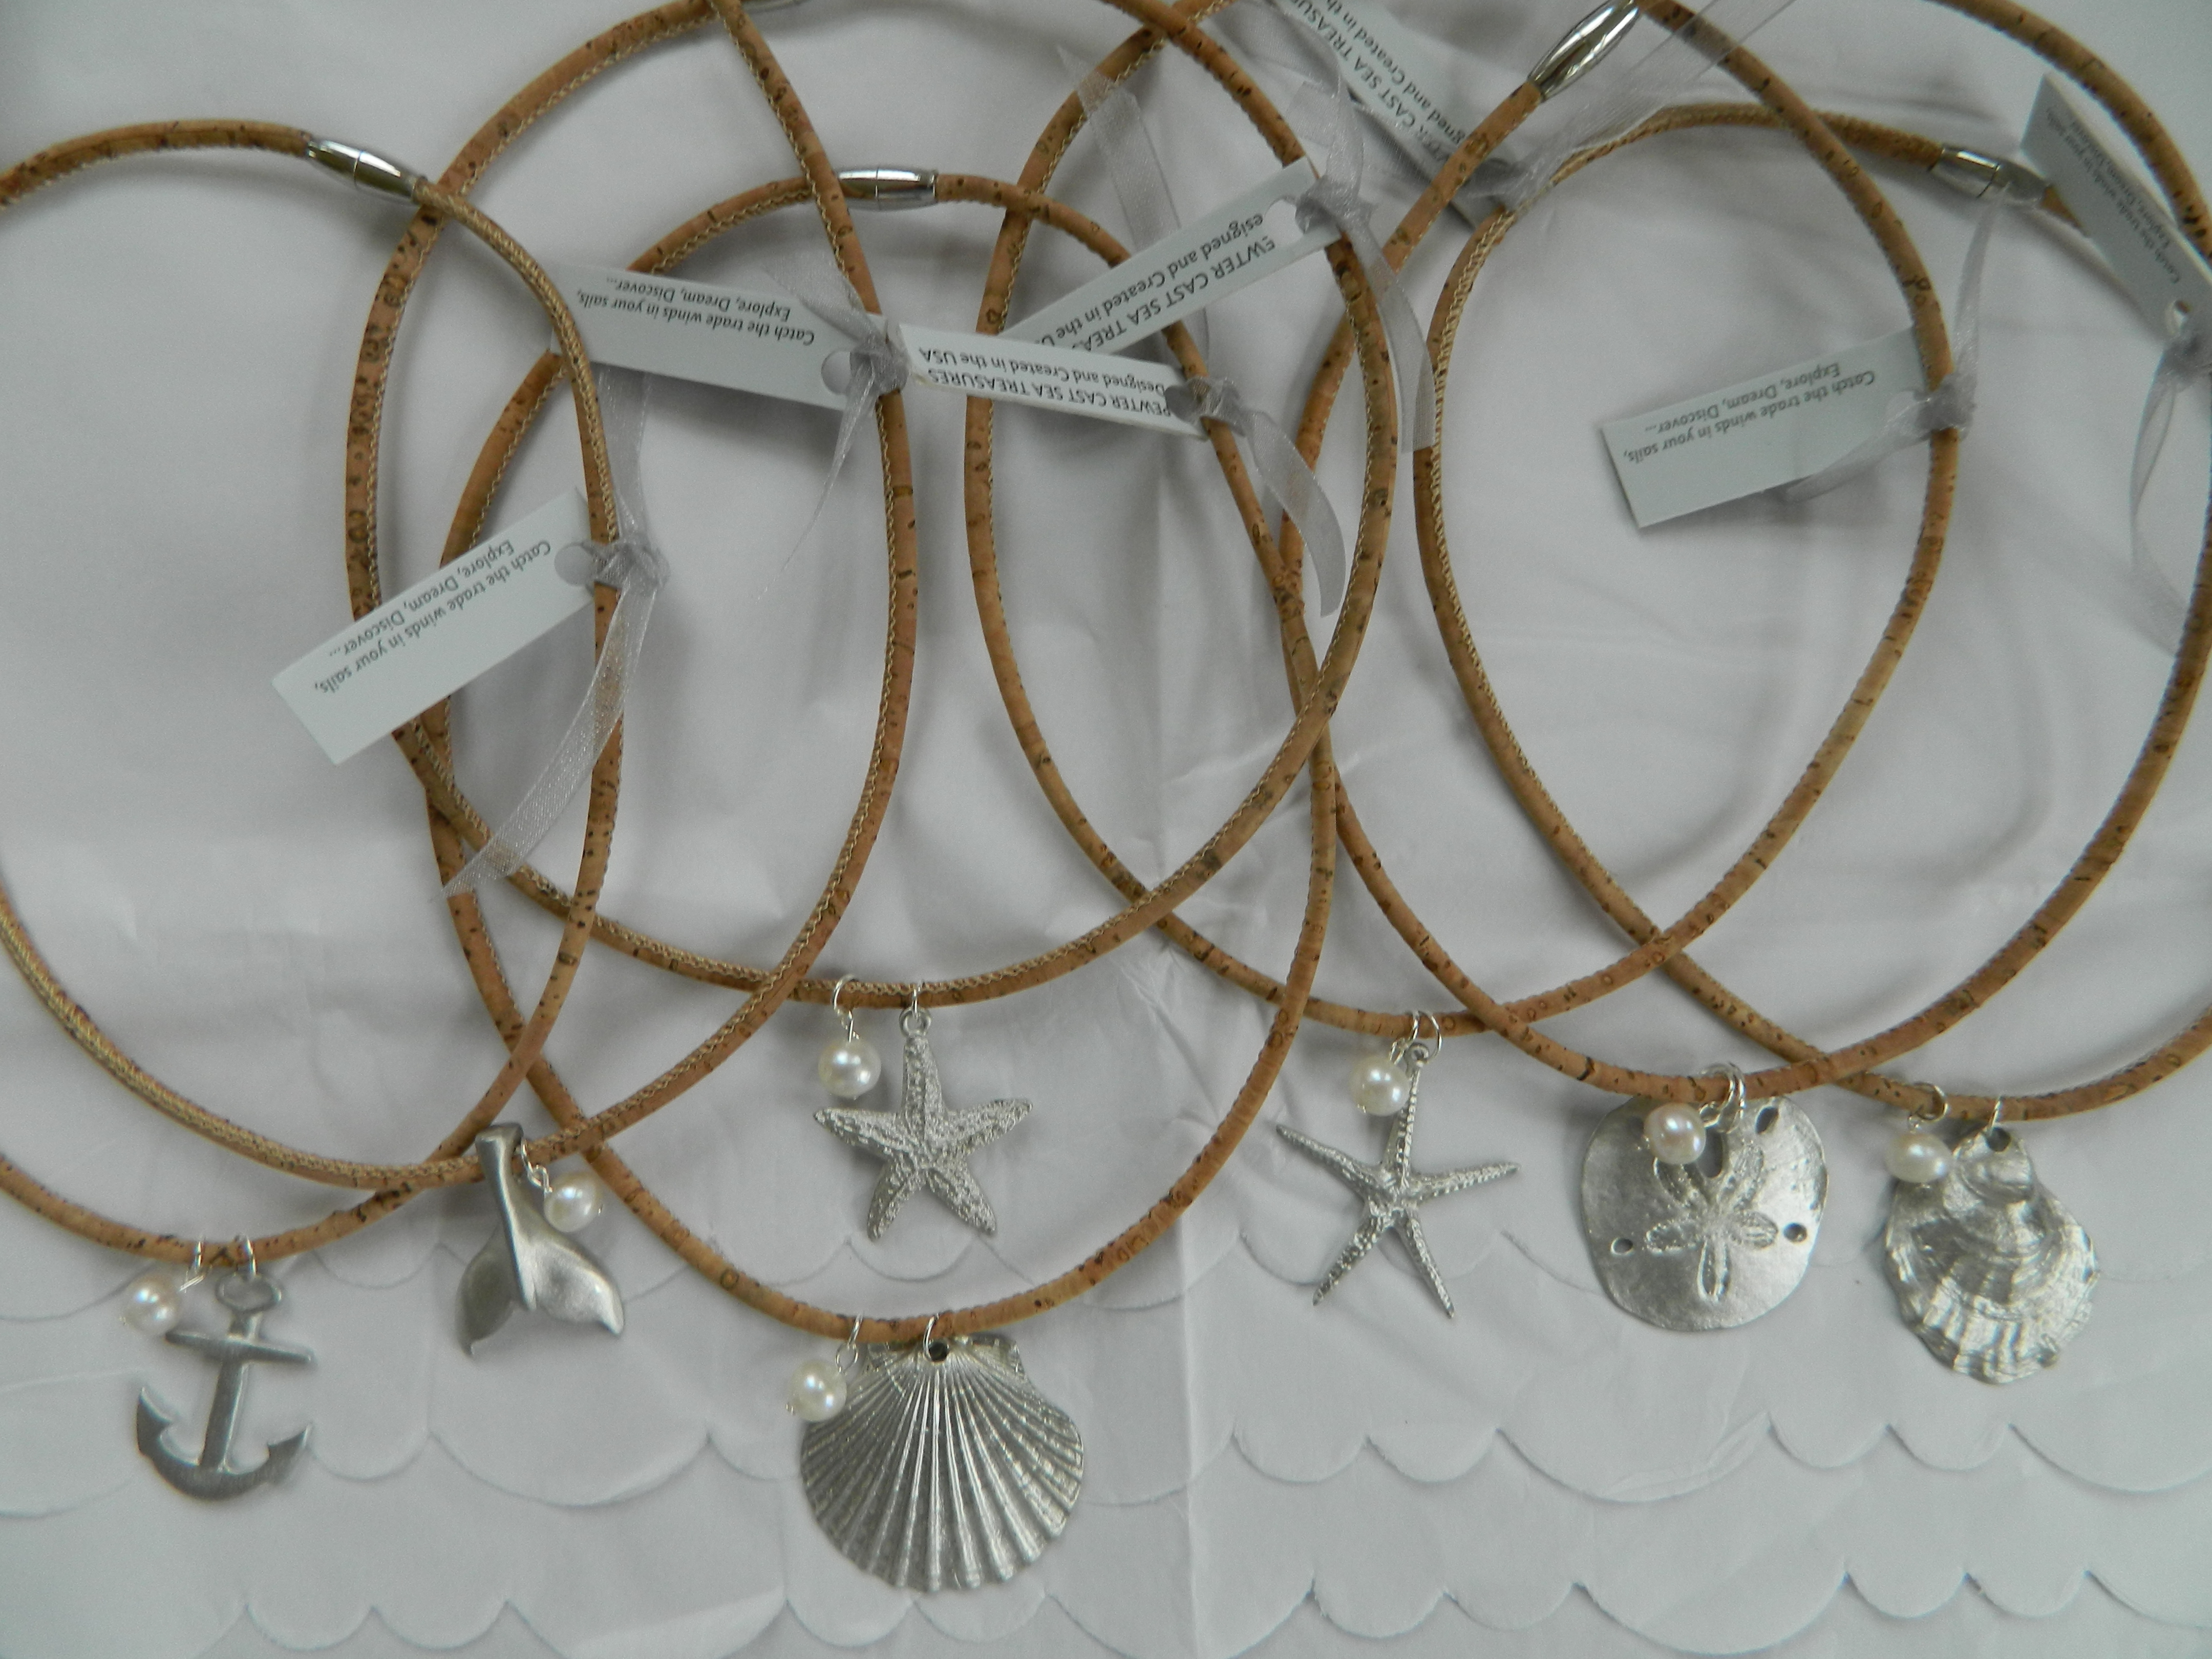 Pewter pendants with pearl on cork